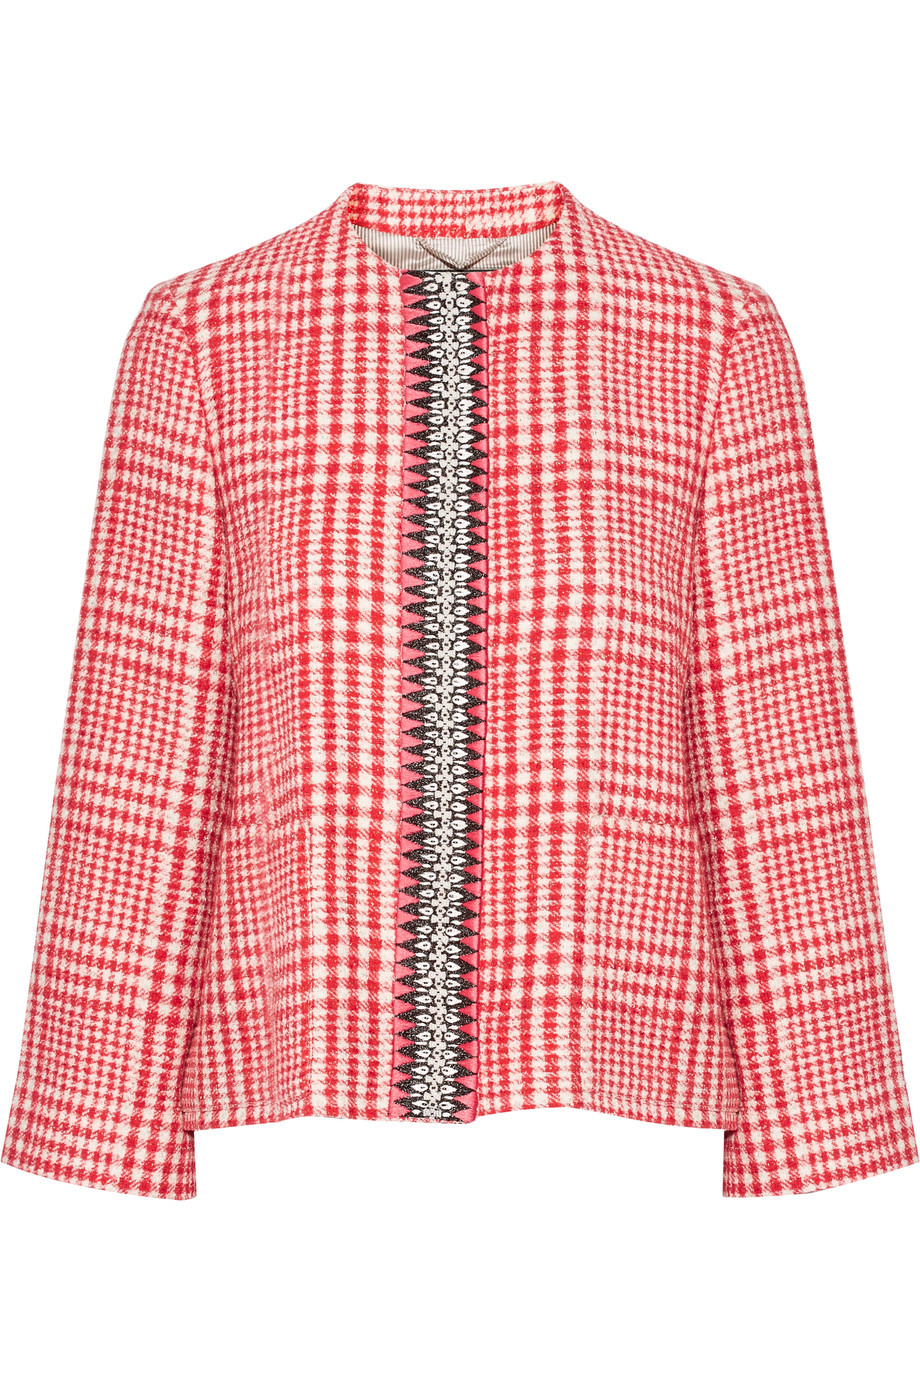 Embellished Cotton Blend Tweed Jacket Red - collar: round collar/collarless; style: boxy; pattern: herringbone/tweed; secondary colour: ivory/cream; predominant colour: true red; occasions: casual, creative work; length: standard; fit: straight cut (boxy); fibres: wool - mix; sleeve length: long sleeve; sleeve style: standard; collar break: high; pattern type: fabric; pattern size: light/subtle; texture group: tweed - light/midweight; season: s/s 2016